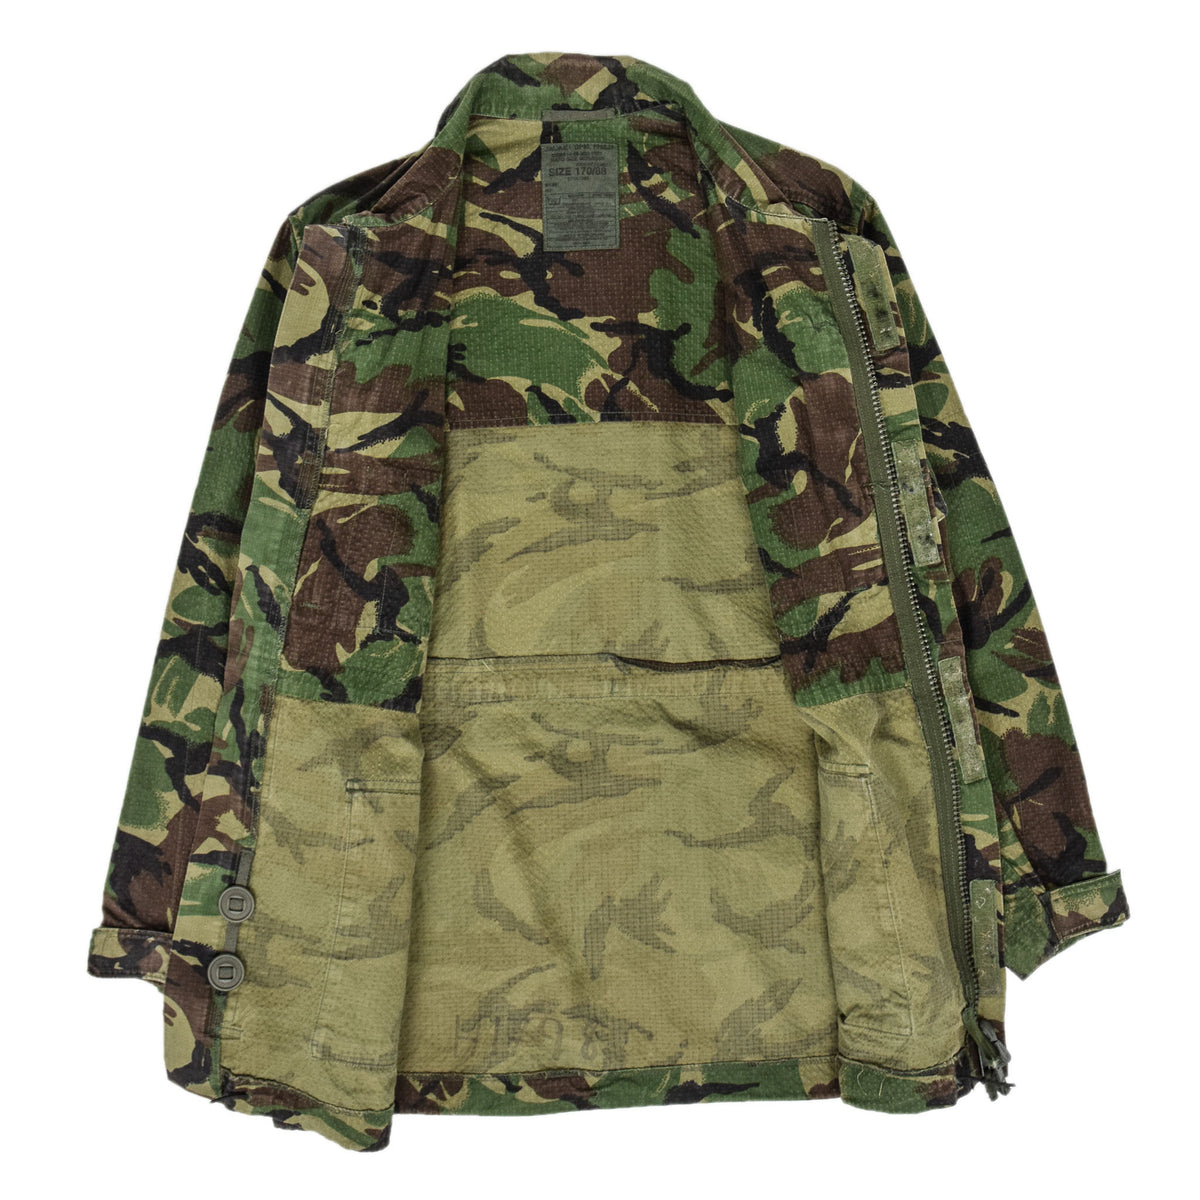 Vintage British Army Combat 95 Woodland Camouflage Coat Field Jacket M internal